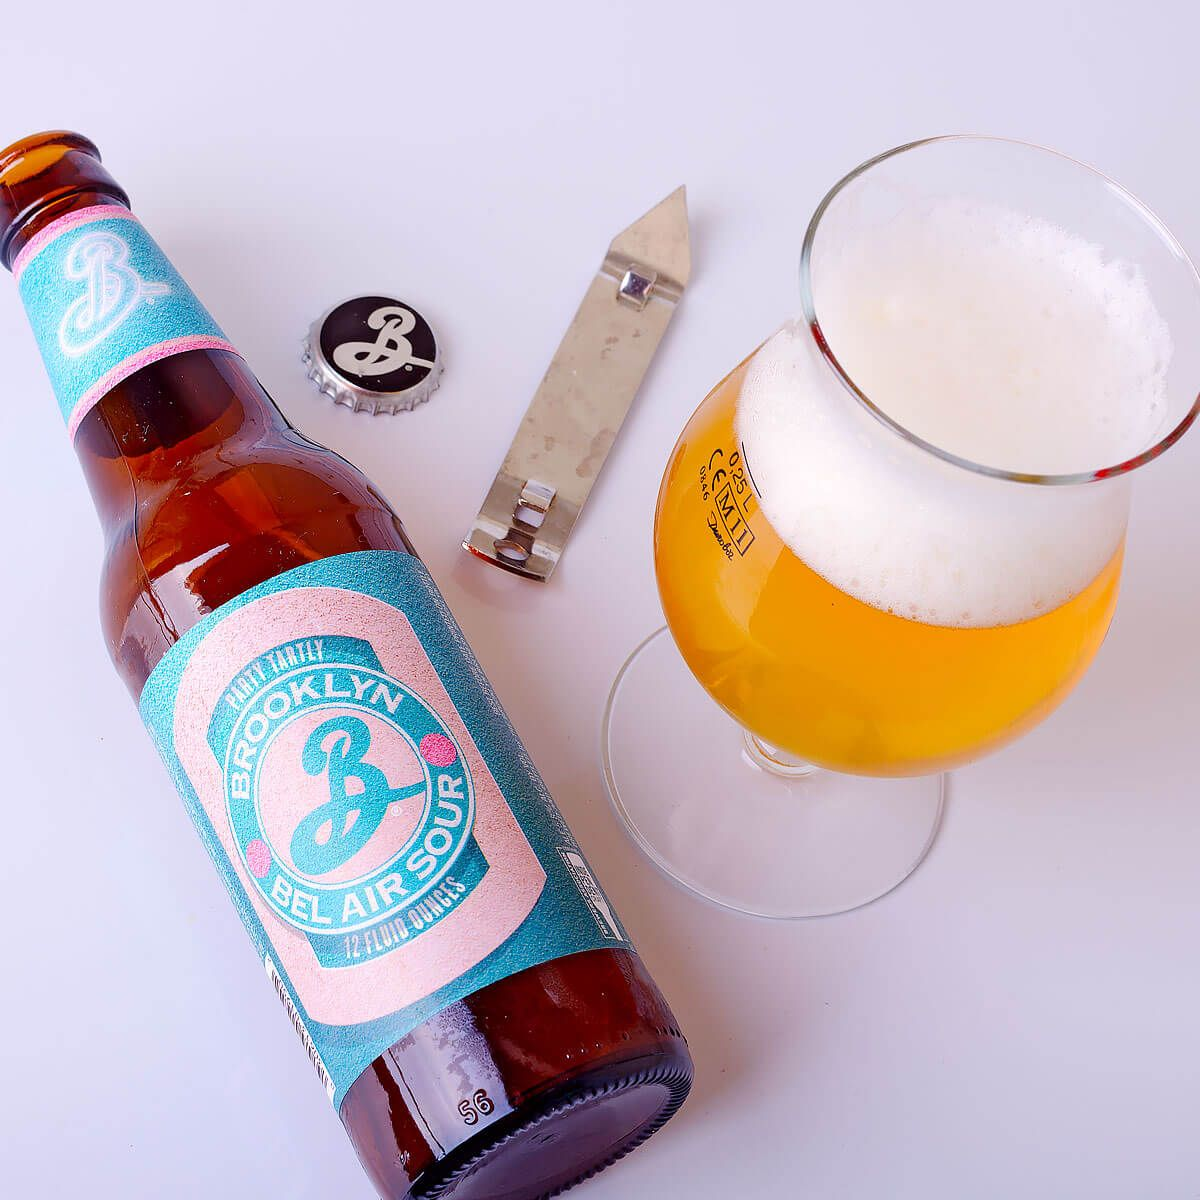 Craft Beer Review for Bel Air Sour by Brooklyn Brewery